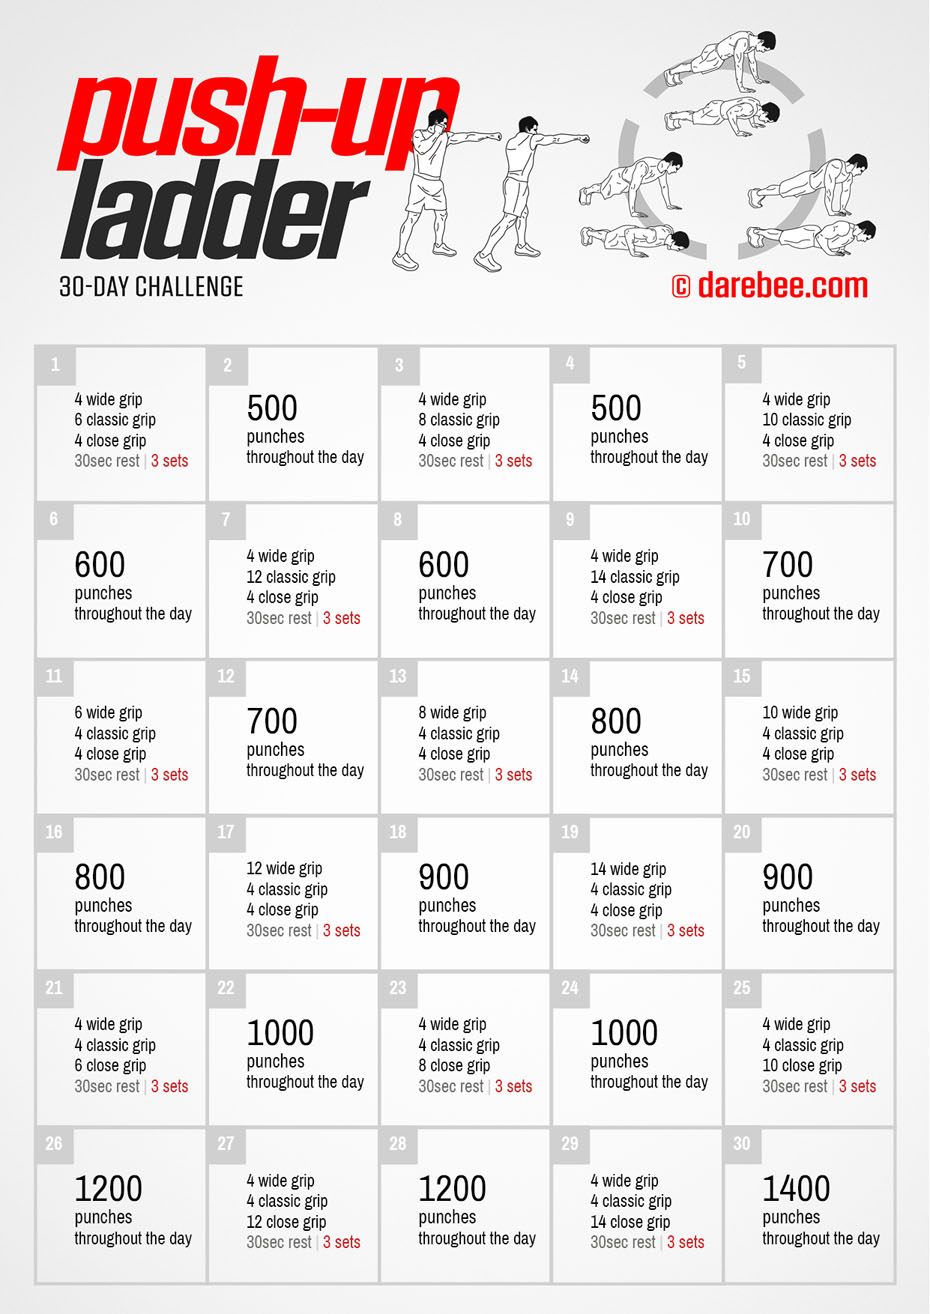 30-Day Push-Up Ladder Challenge by DAREBEE